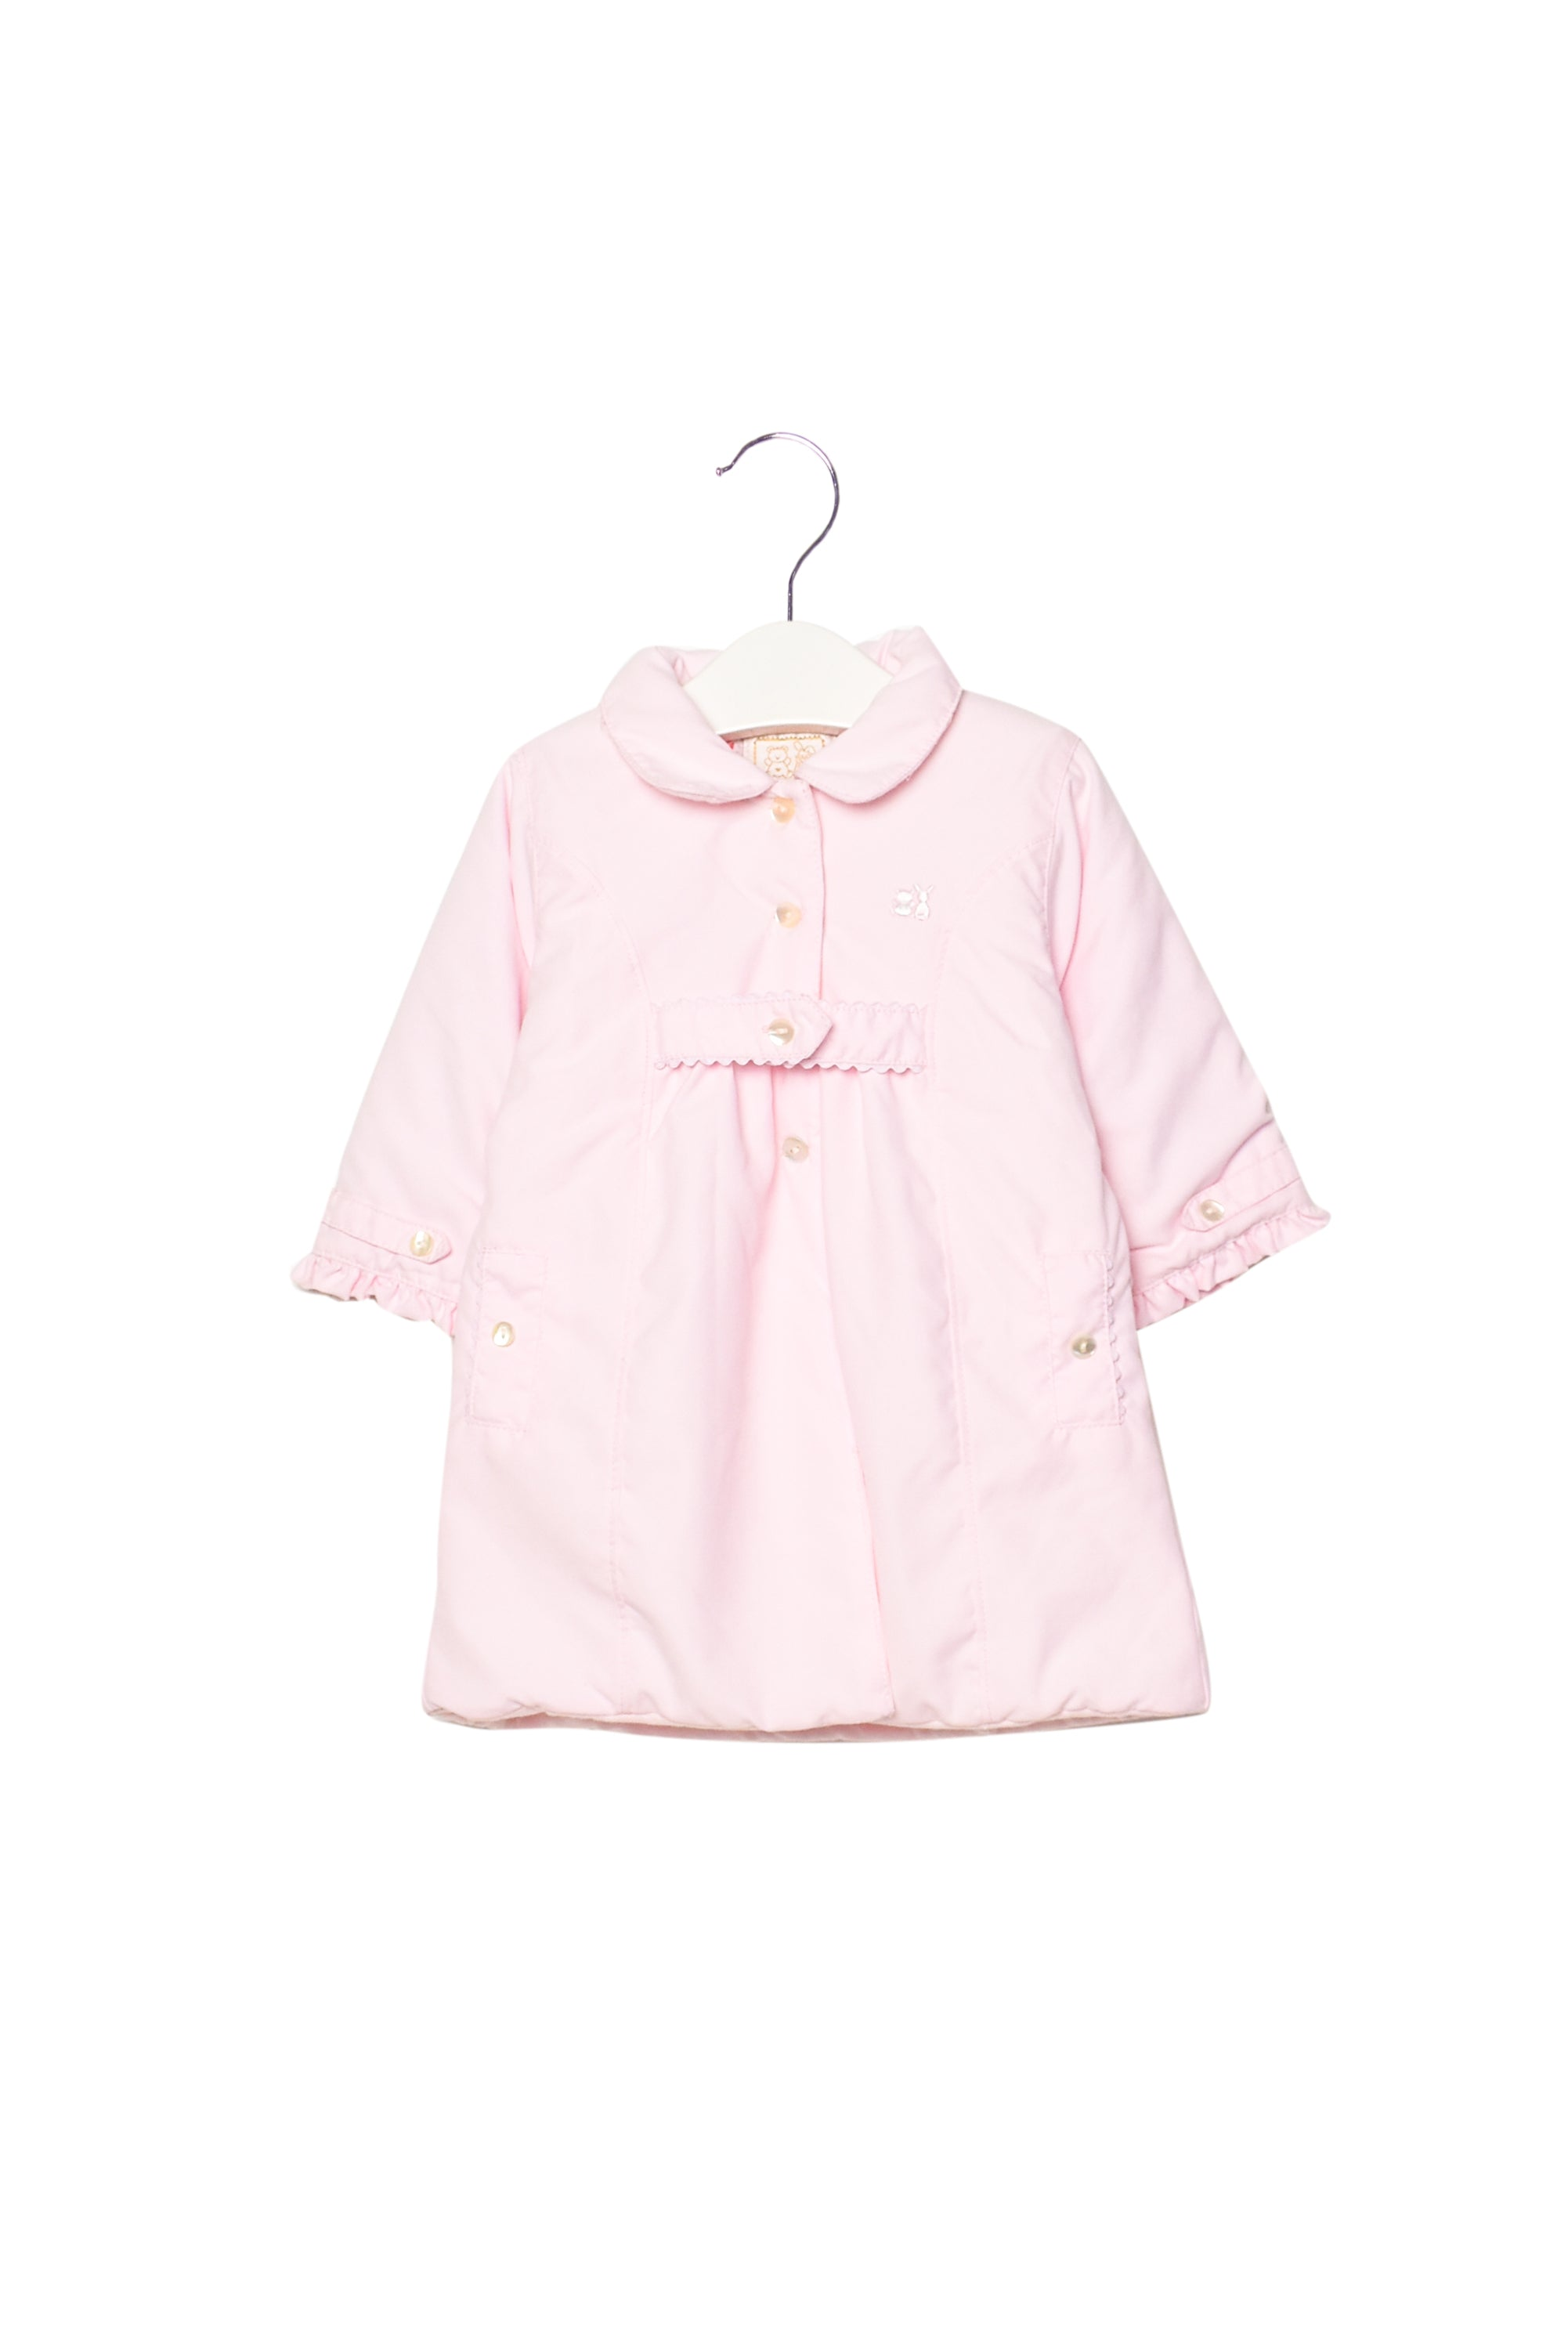 10011717 Emile et Rose Baby ~ Coat 6M at Retykle